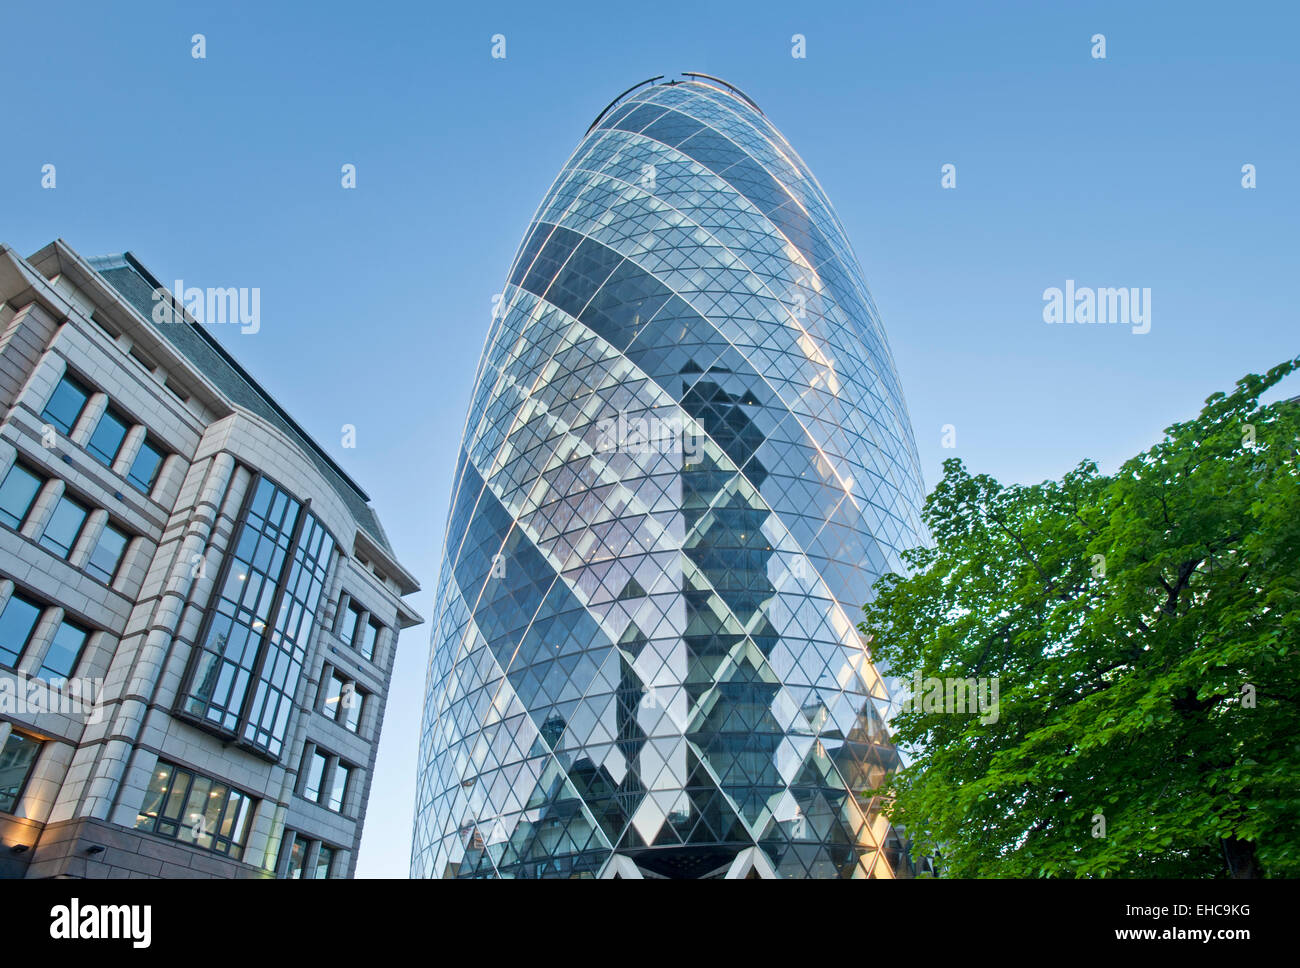 The Gherkin or The Swiss Re Building, City of London, England, UK - Stock Image